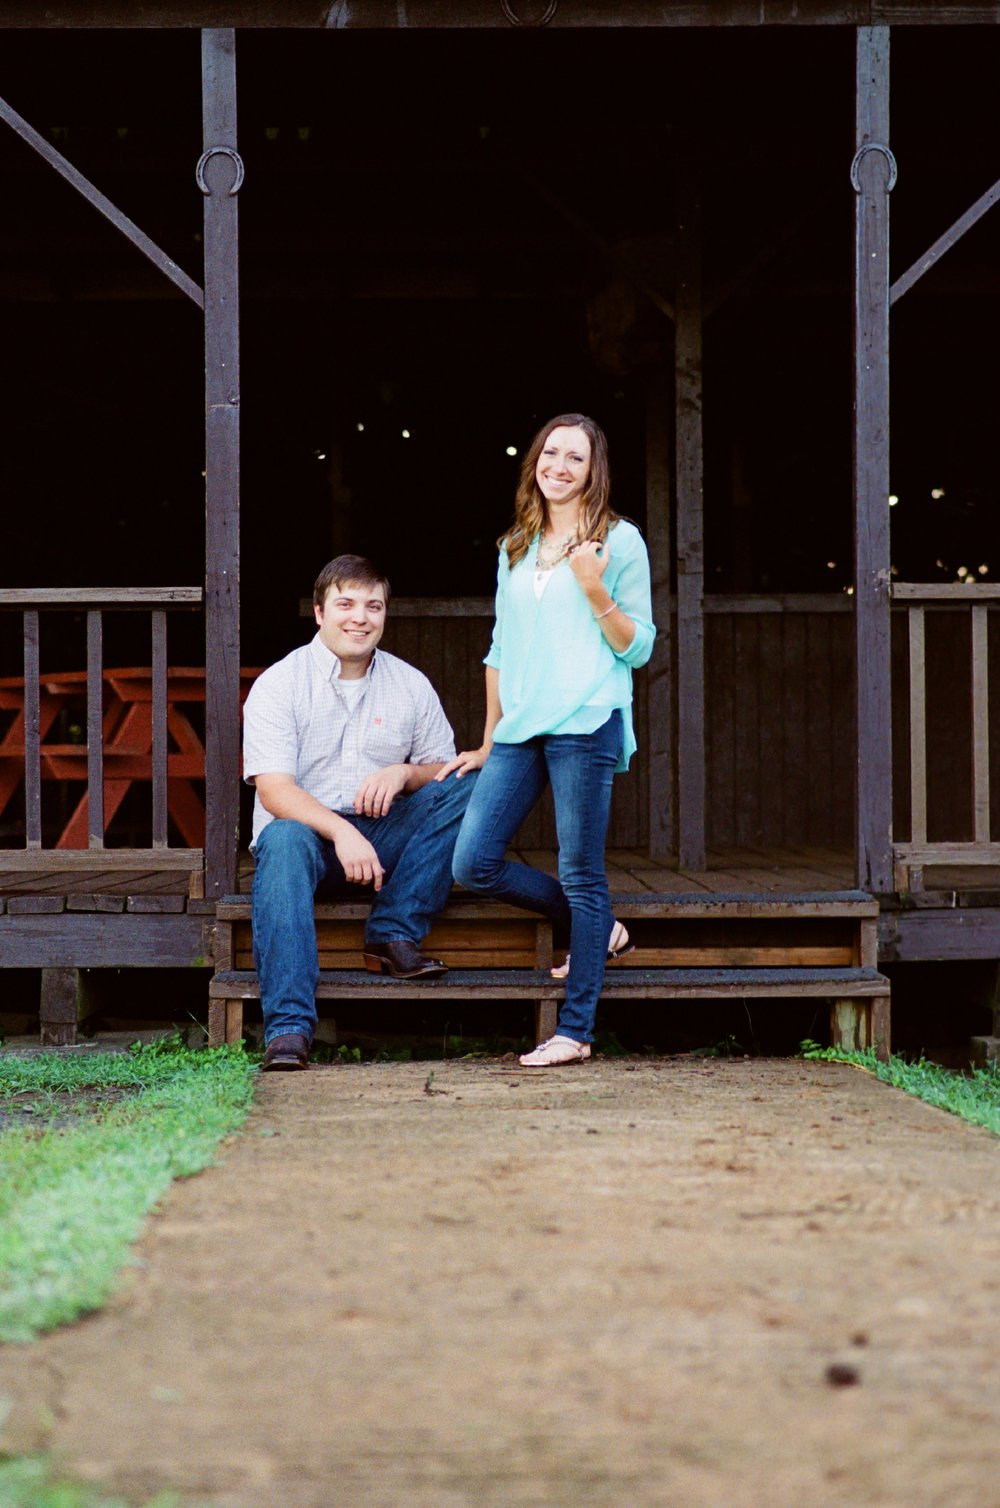 bombshel_photography_renton_family_photographer_0086.jpg